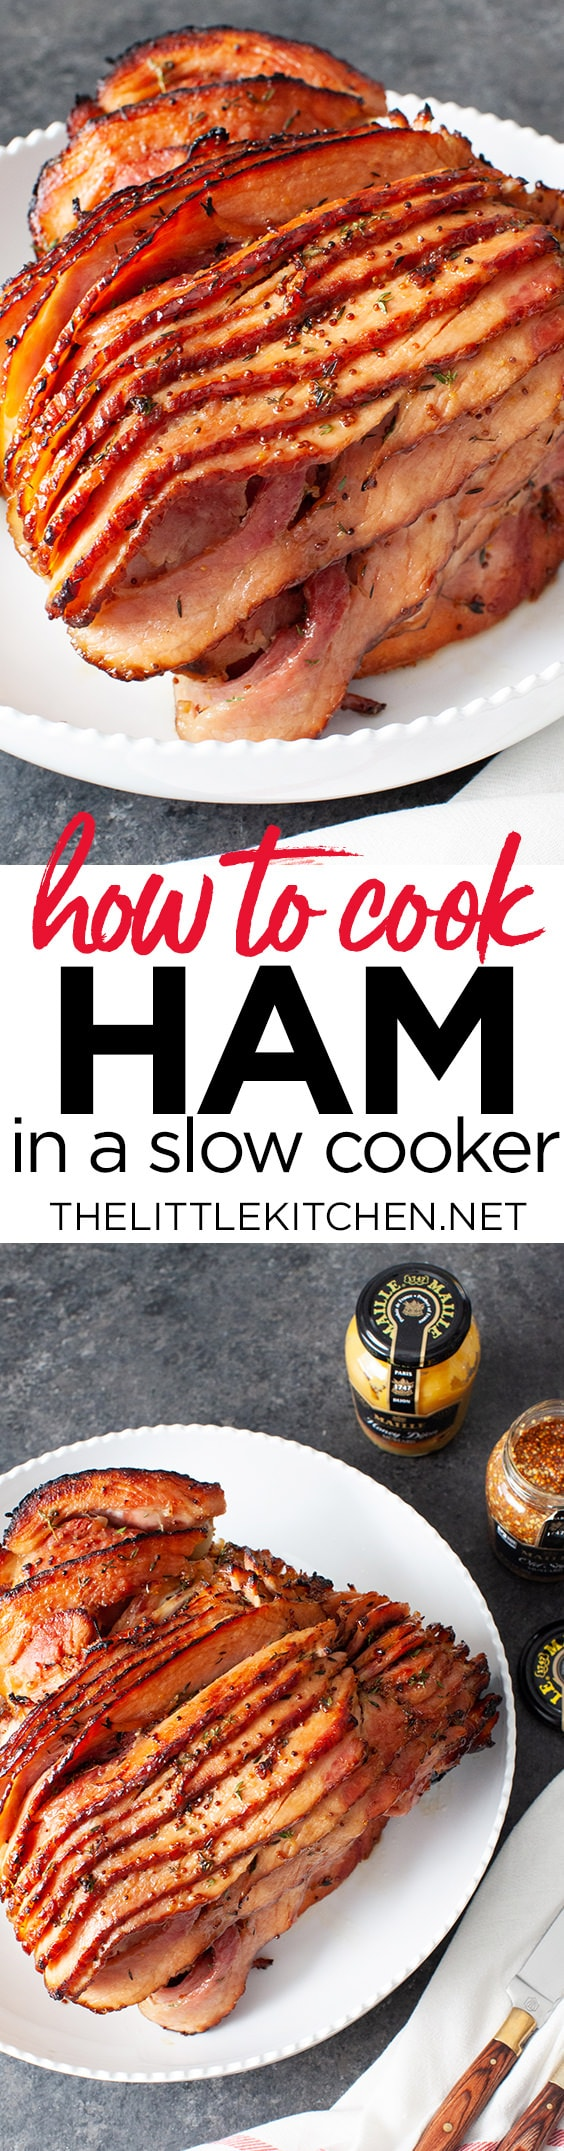 Slow Cooker Ham from thelittlekitchen.net